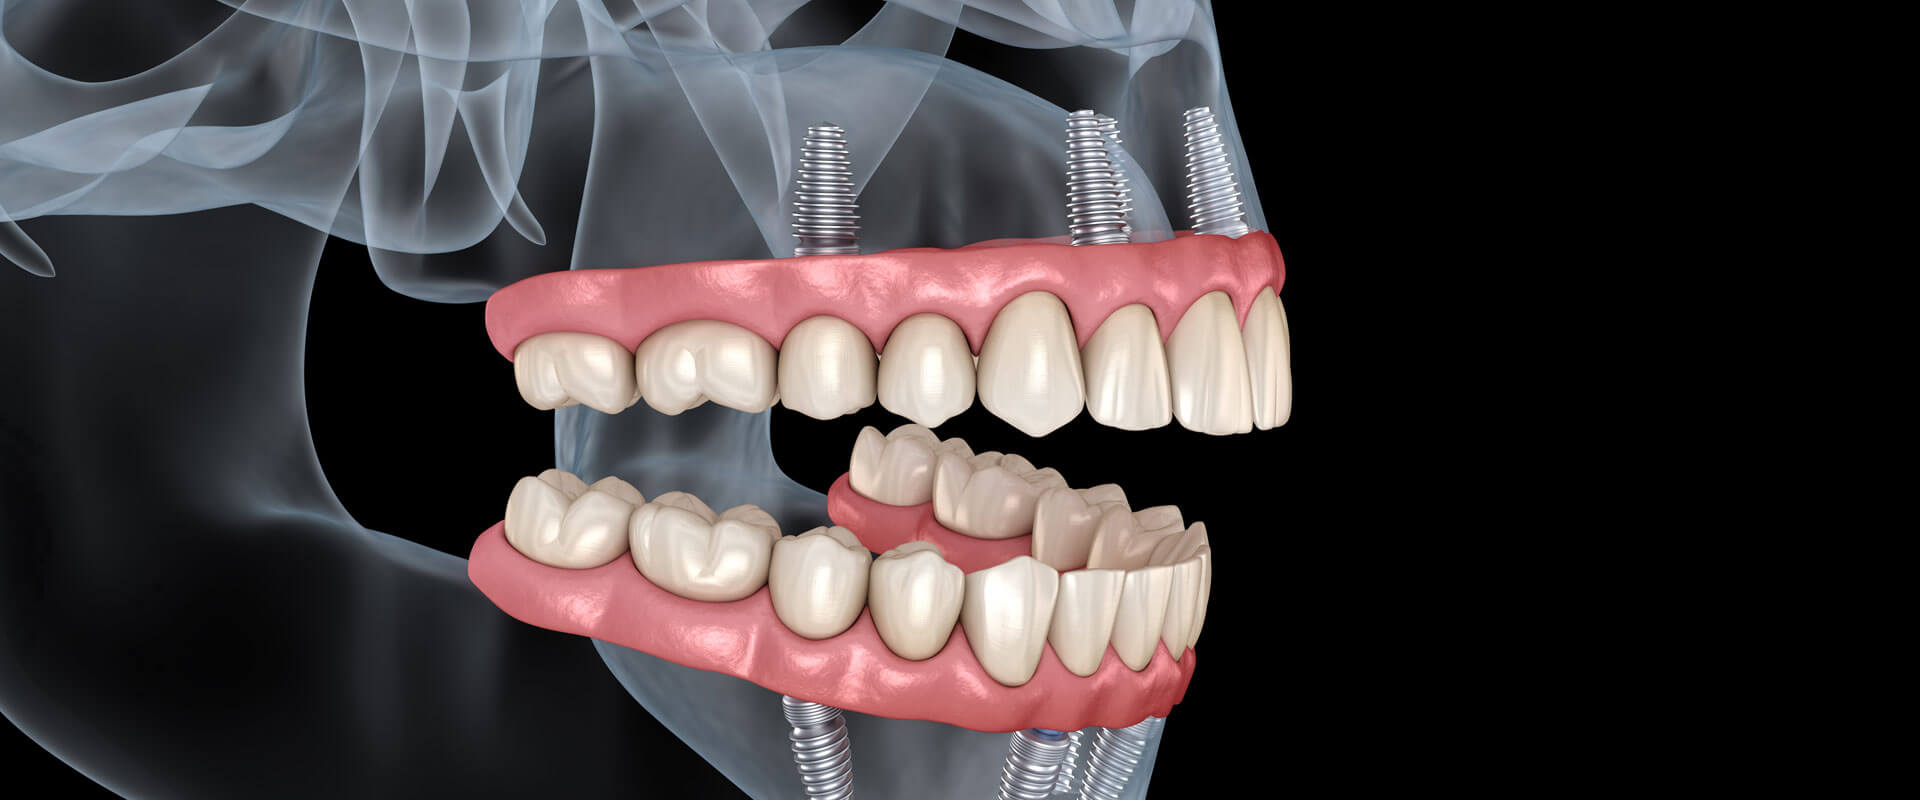 Closeup of a dental X-Ray graphic